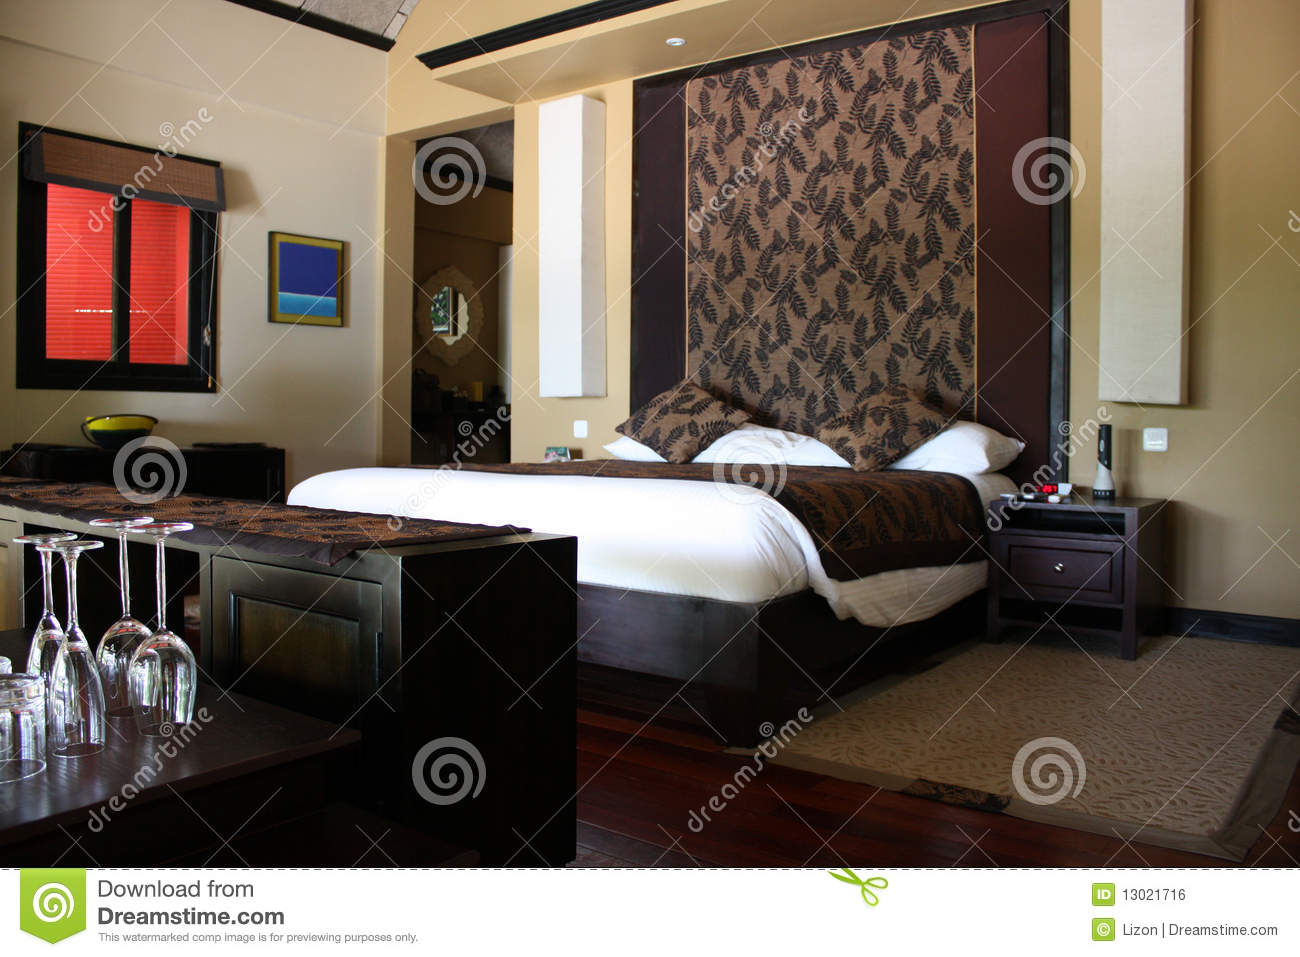 Royalty Free. Download Raum, Schlafzimmer, Braun Stockfoto.